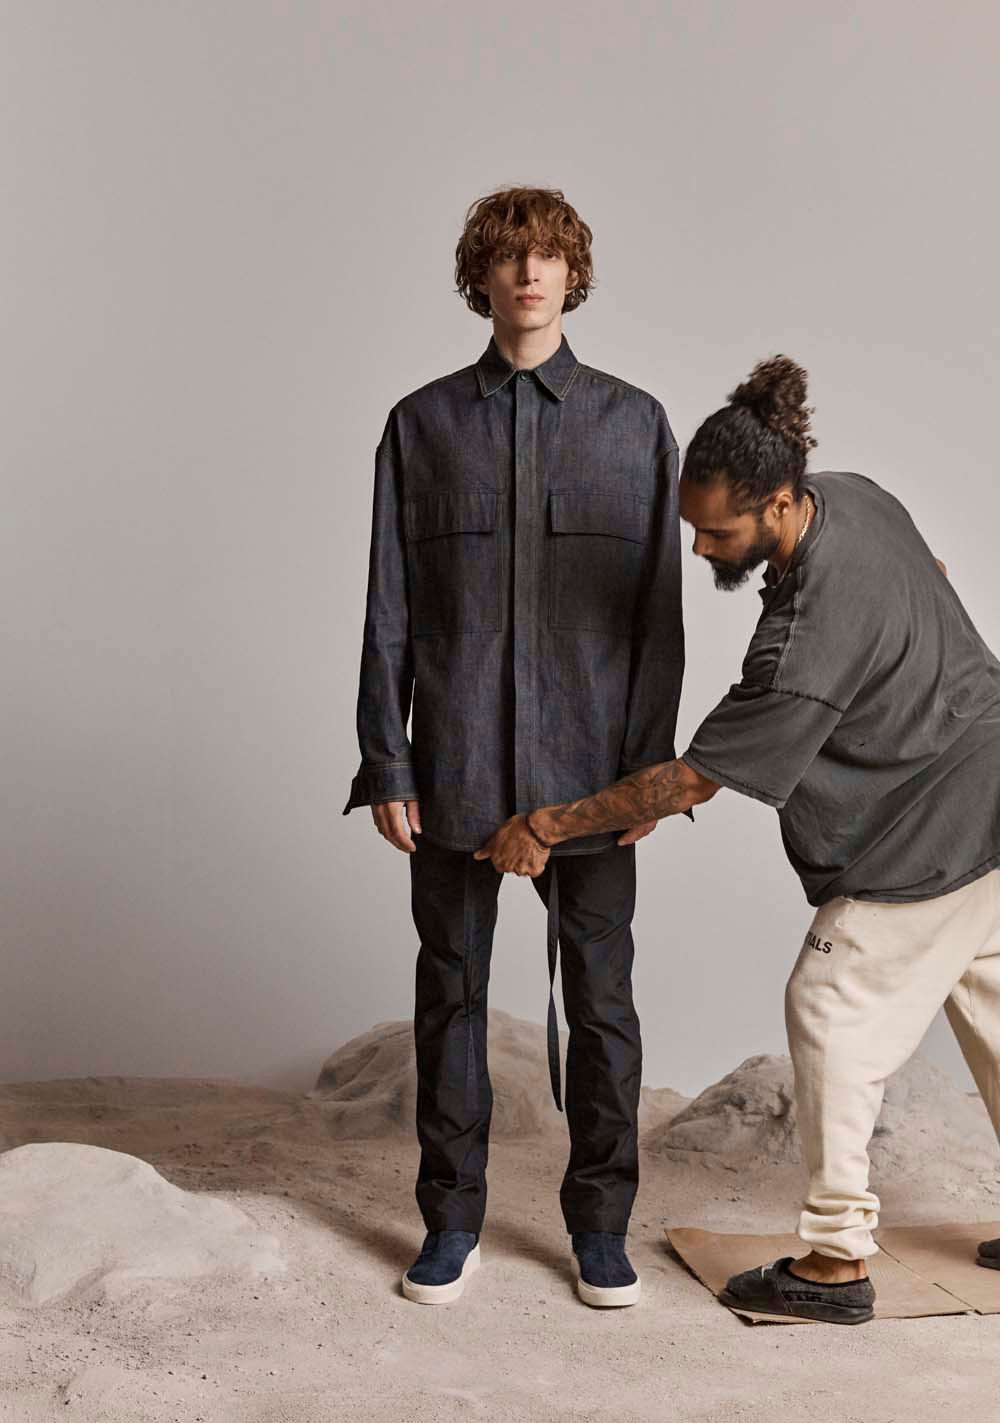 https_%2F%2Fhypebeast.com%2Fimage%2F2018%2F09%2Ffear-of-god-6-sixth-collection-jared-leto-nike-89.jpg